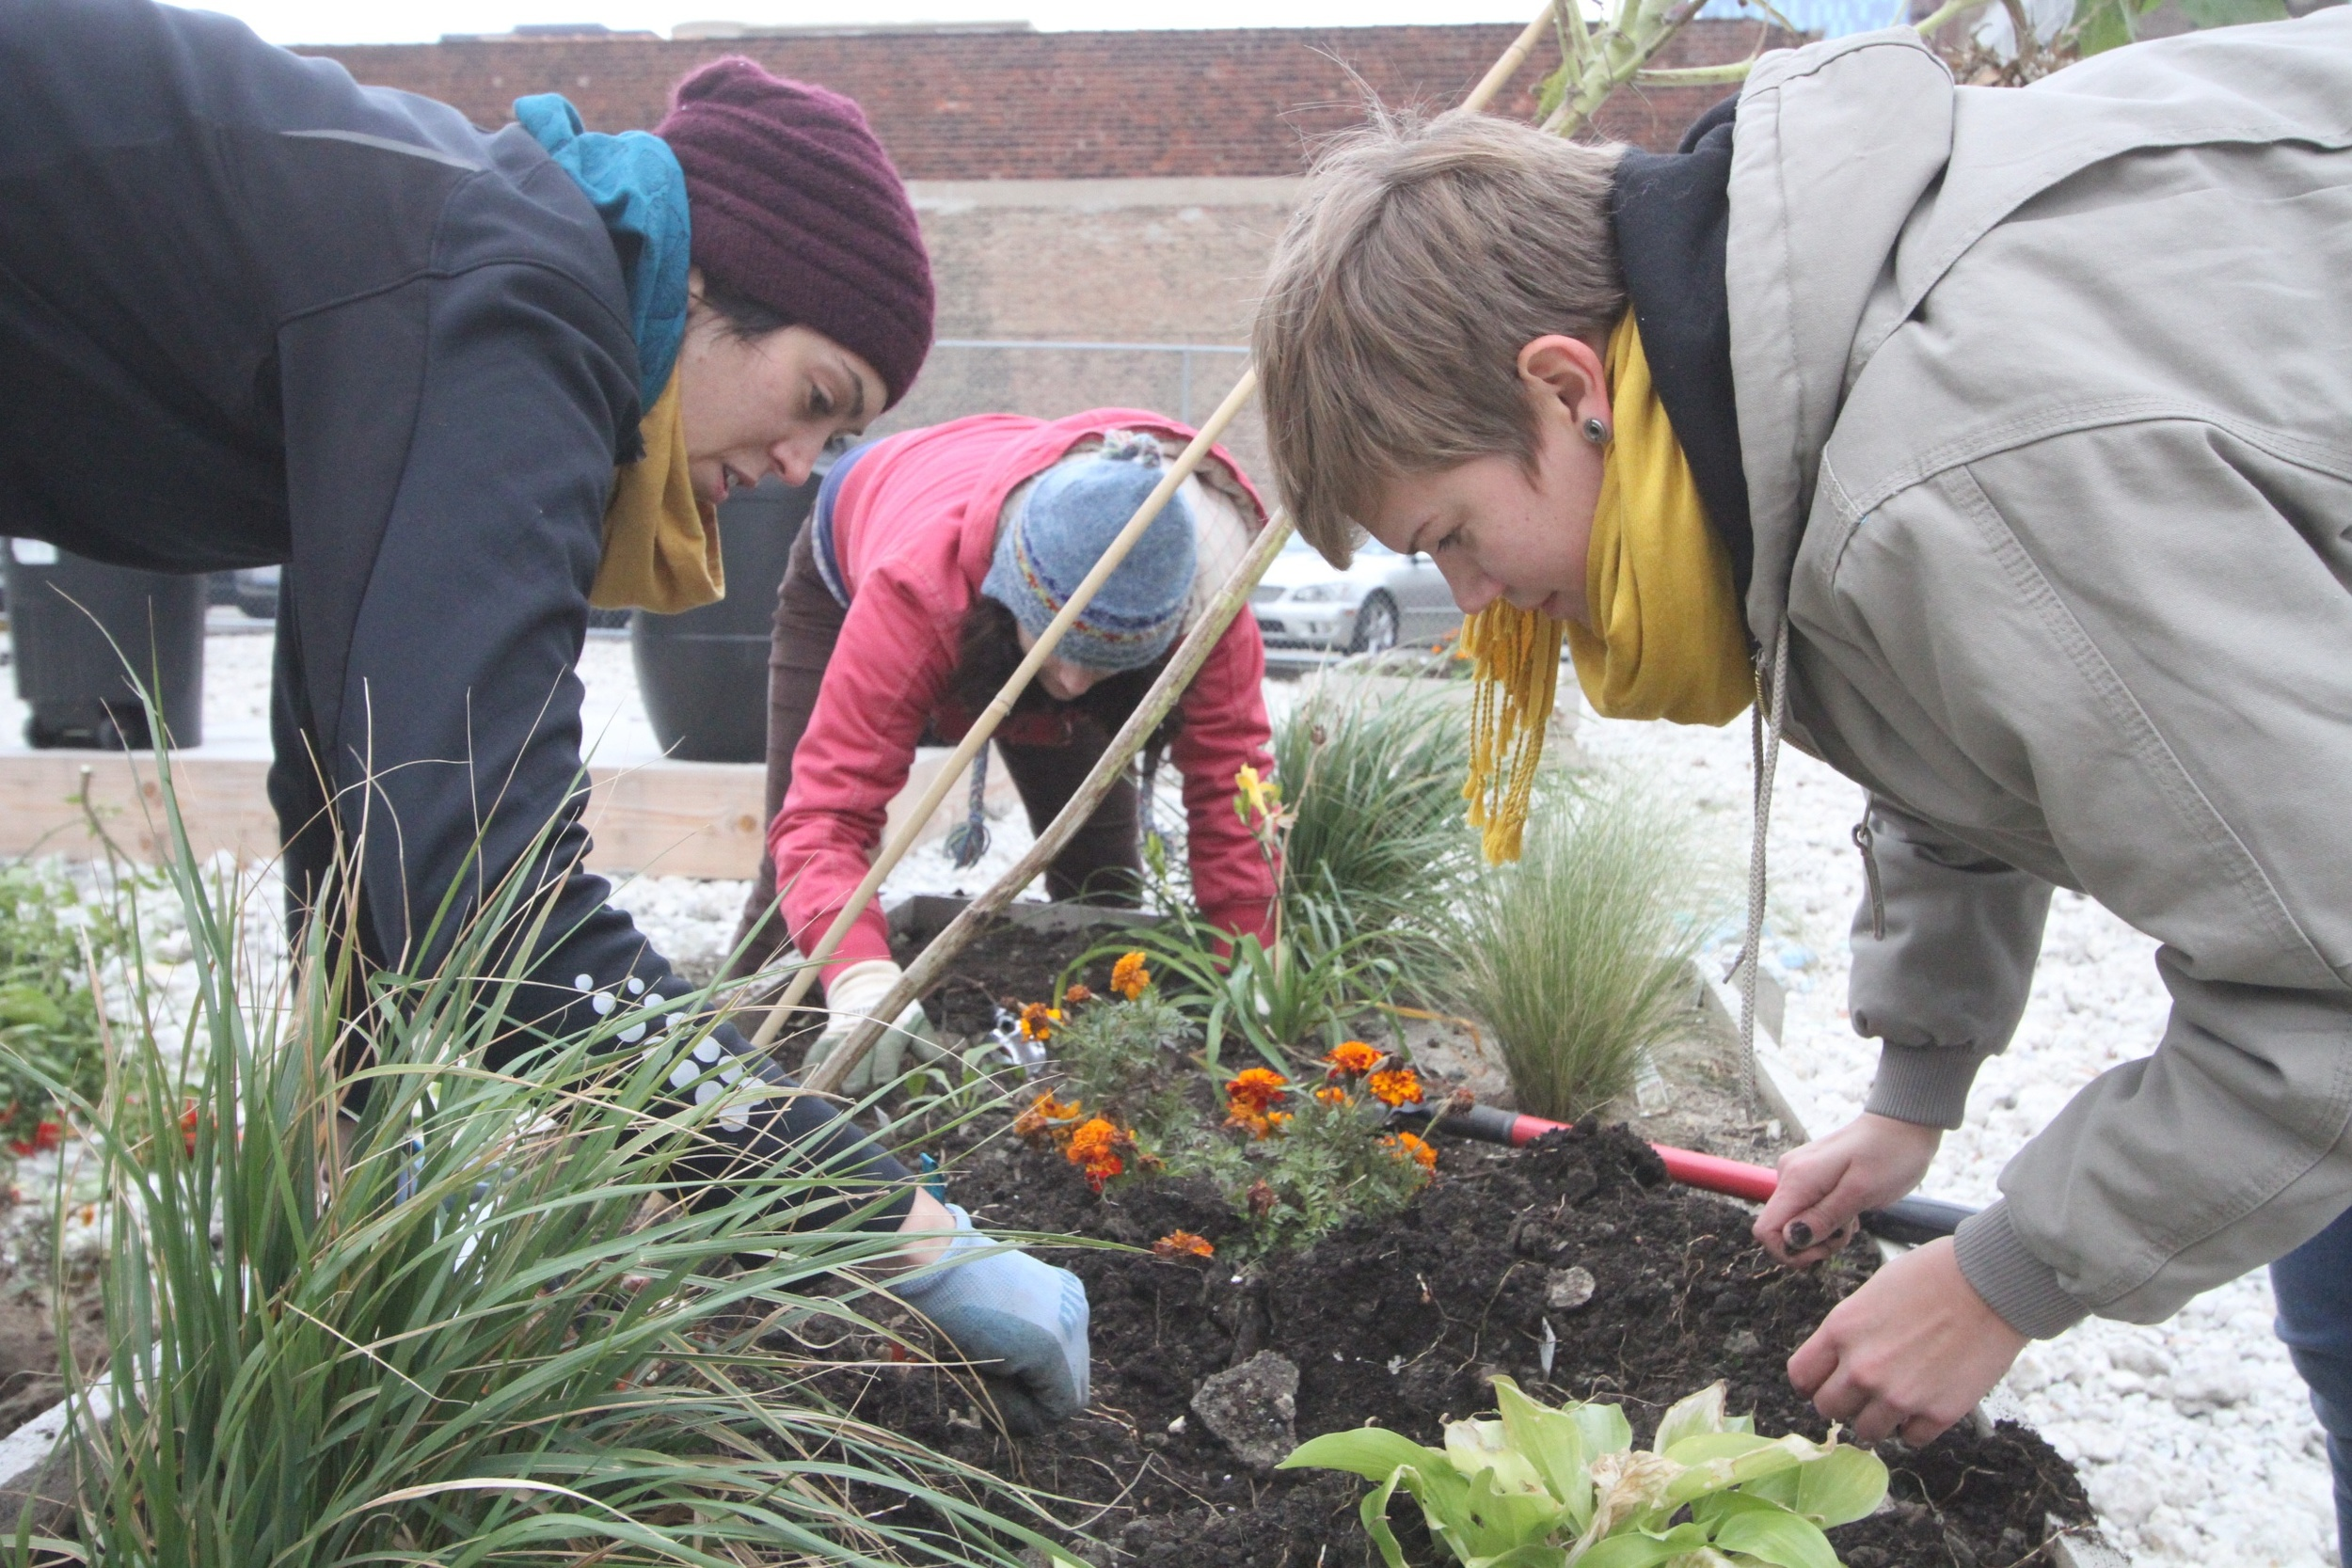 Students prepare the beds for the first winter in the Papermaker's Garden 1.0 in 2012. We had a successful first summer, and the garden was remodeled in early 2013.  Photo Credit: Chelsea Shilling